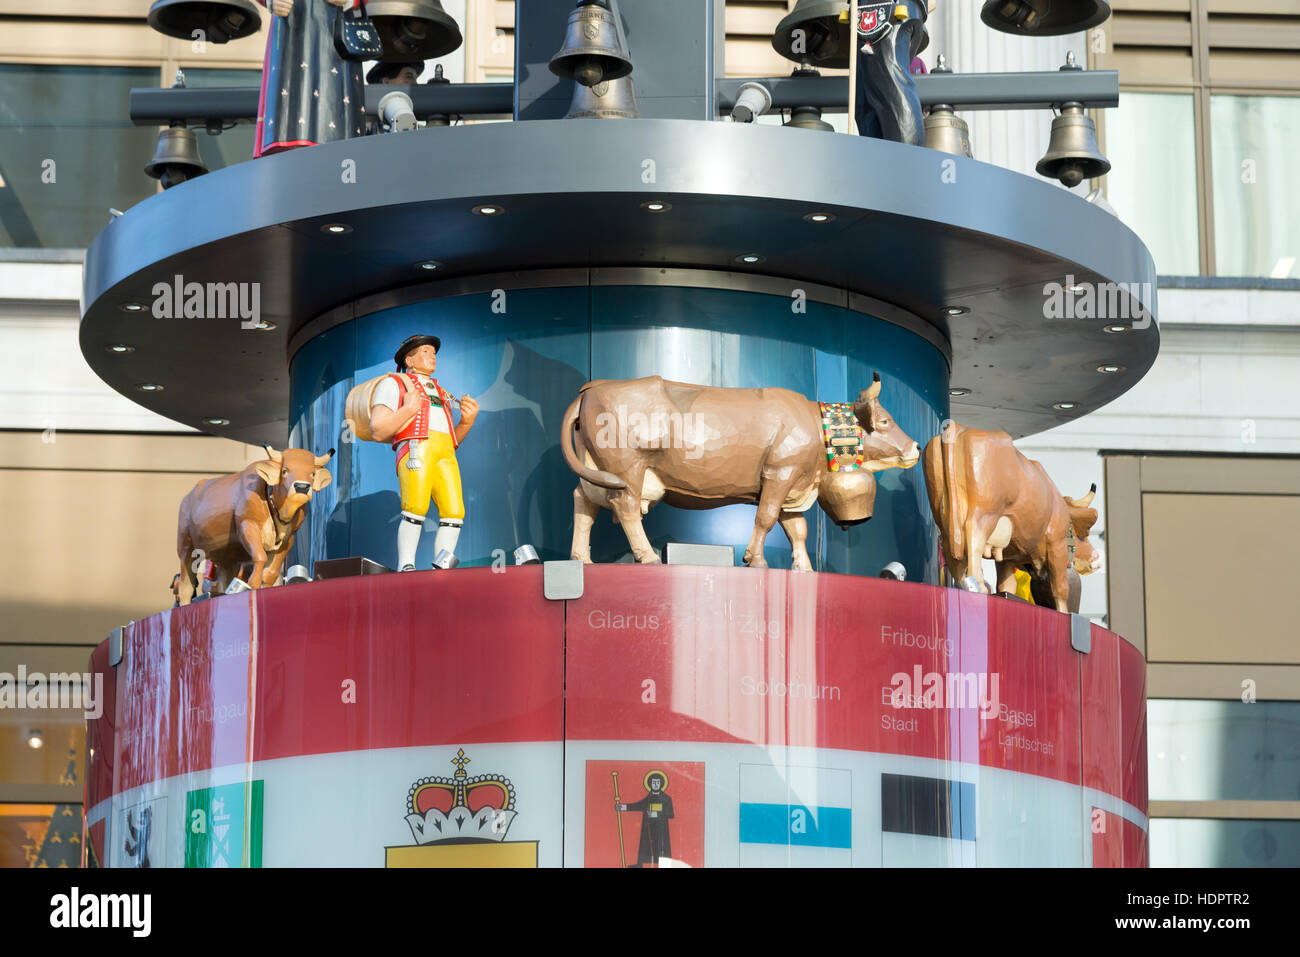 The Swiss Glockenspiel in Leicester Square, London, England, UK - Stock Image